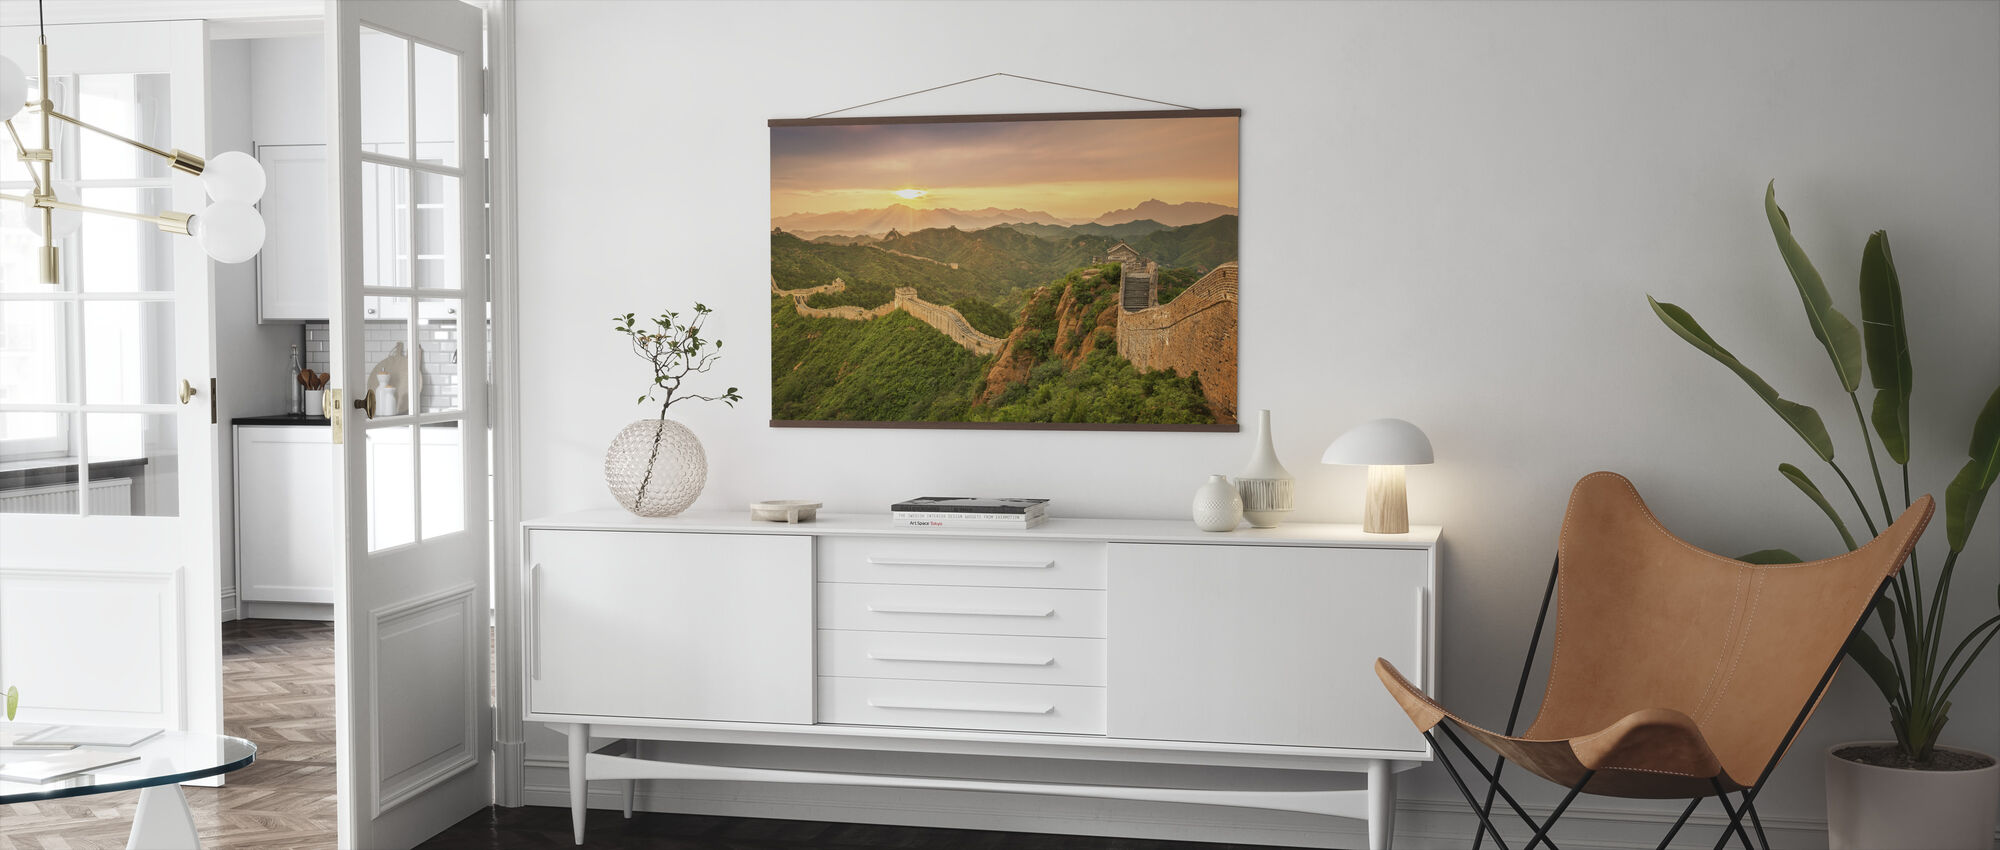 Great Wall of China at Sunrise - Poster - Living Room